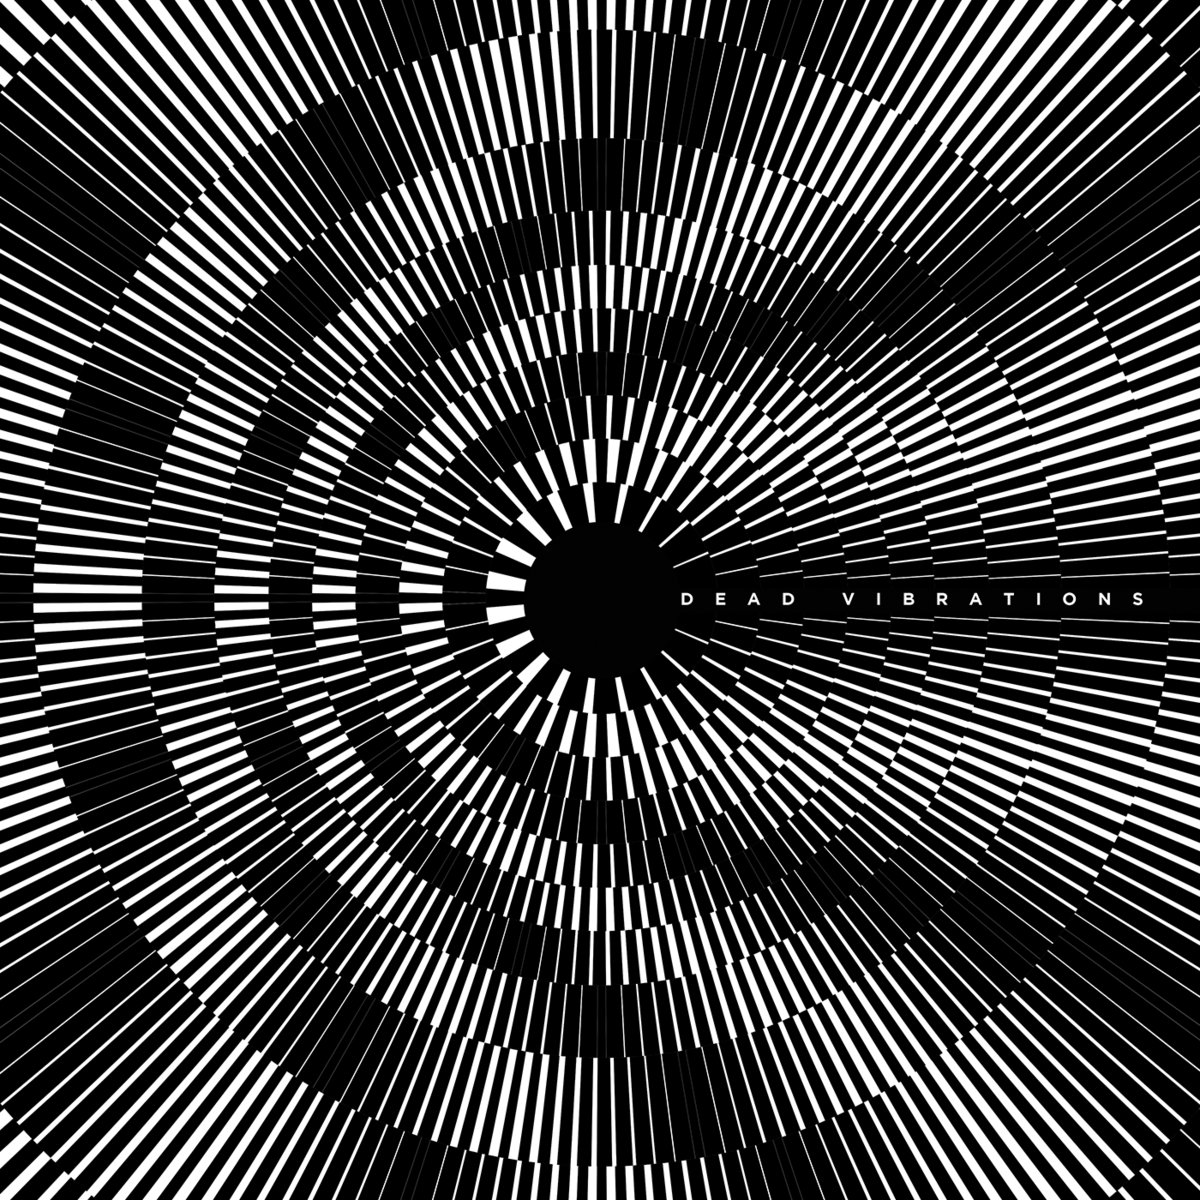 DEAD VIBRATIONS – Glorious Psychedelic Wall Of Sound ...